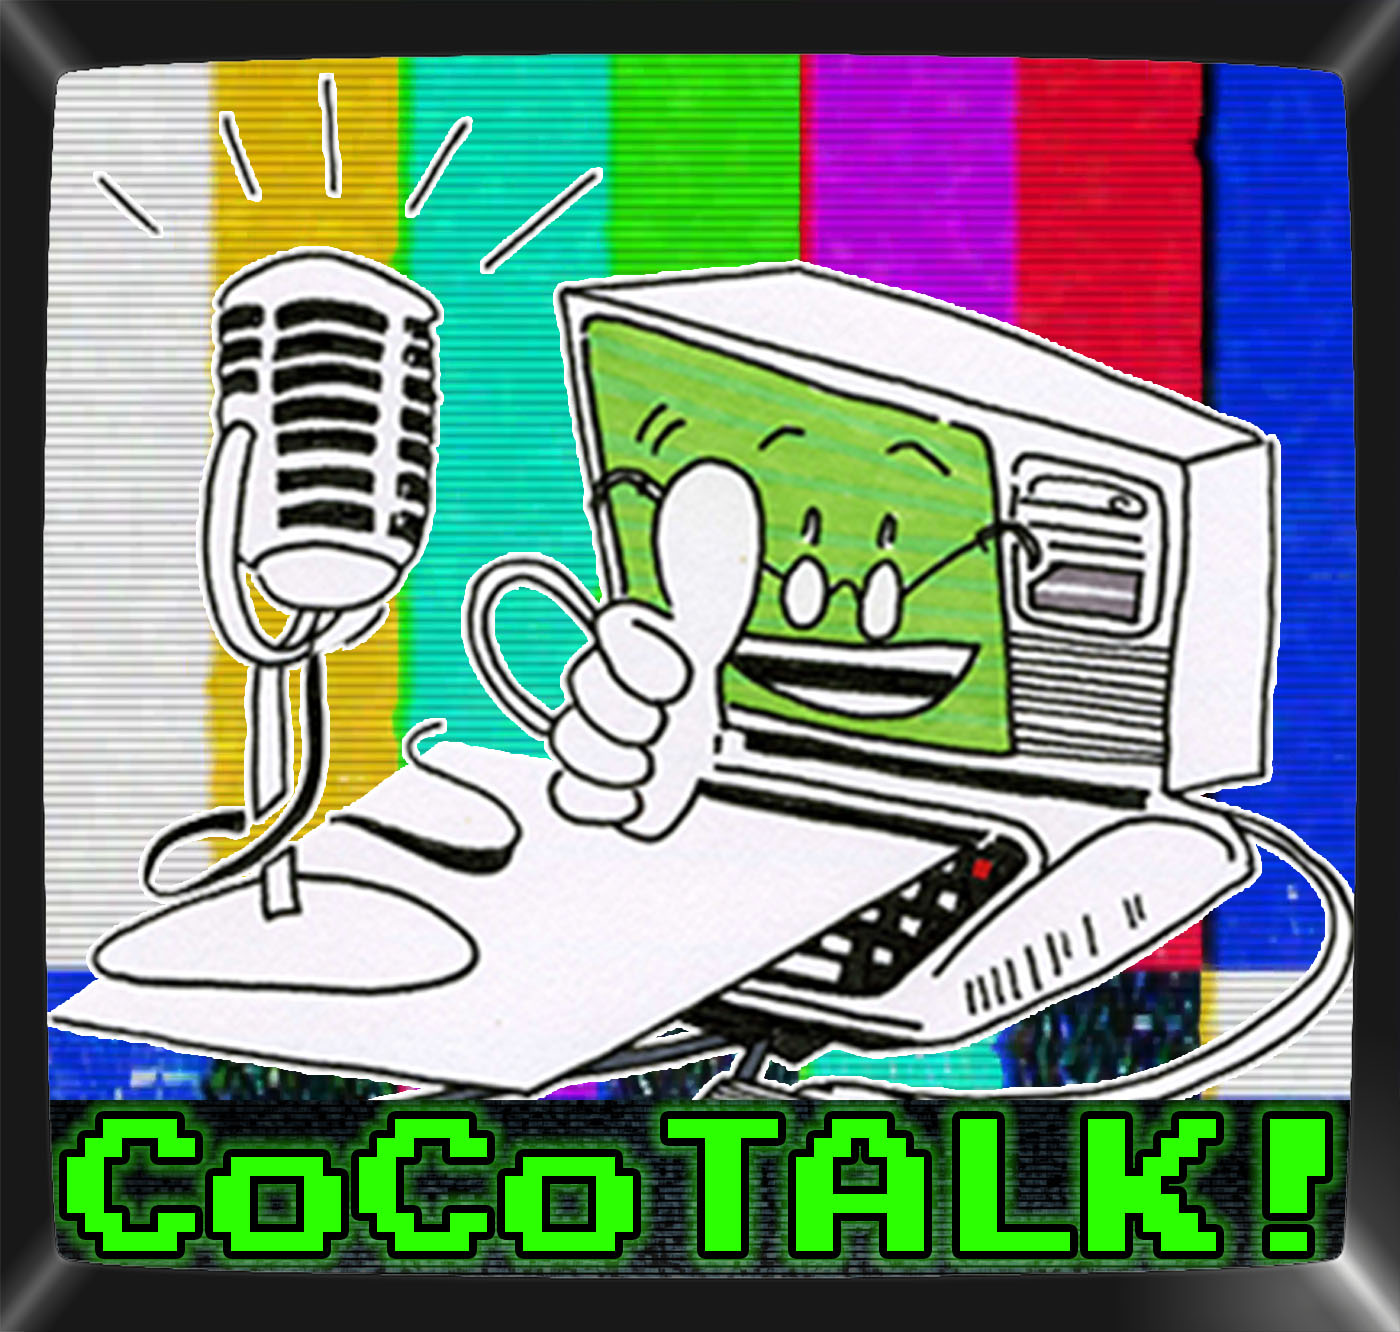 CoCoTALK! replays